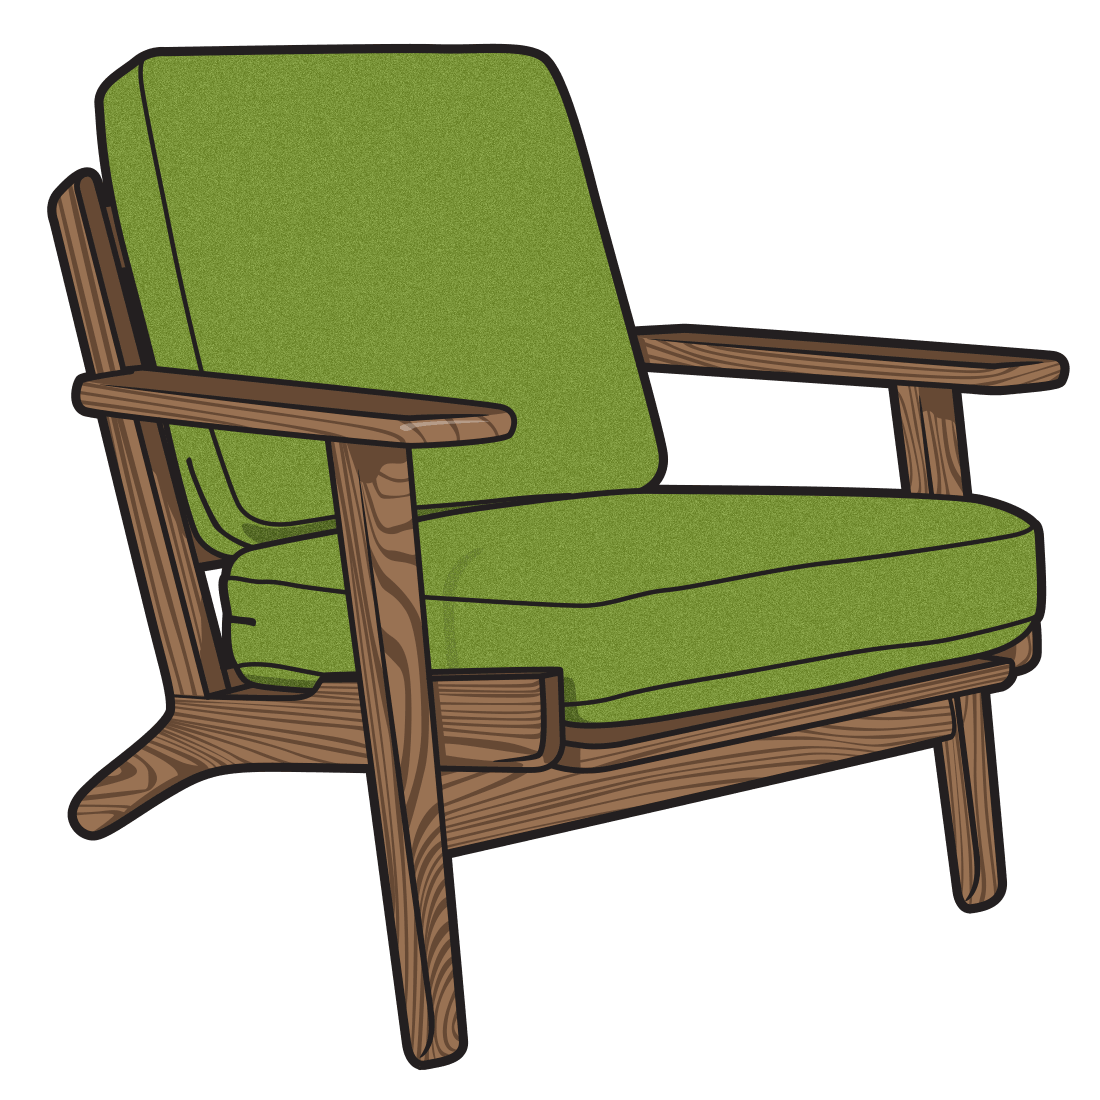 Armchair drawing sofa chair. Furniture illustration drawings of